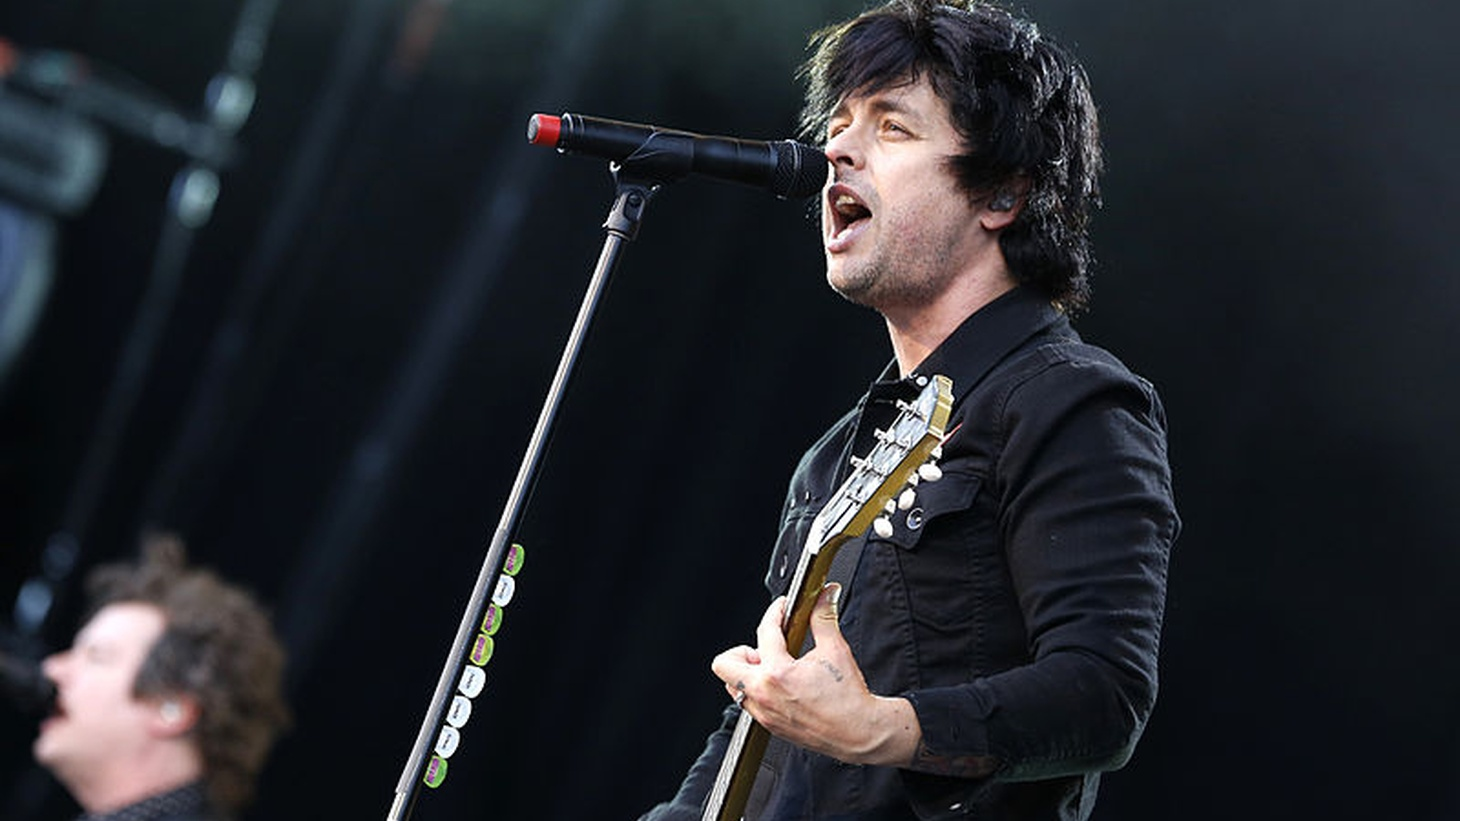 Billie Joe Armstrong, singer and guitarist of Green Day, stands on the Center Stage of Rock im Park-Festival 2013.